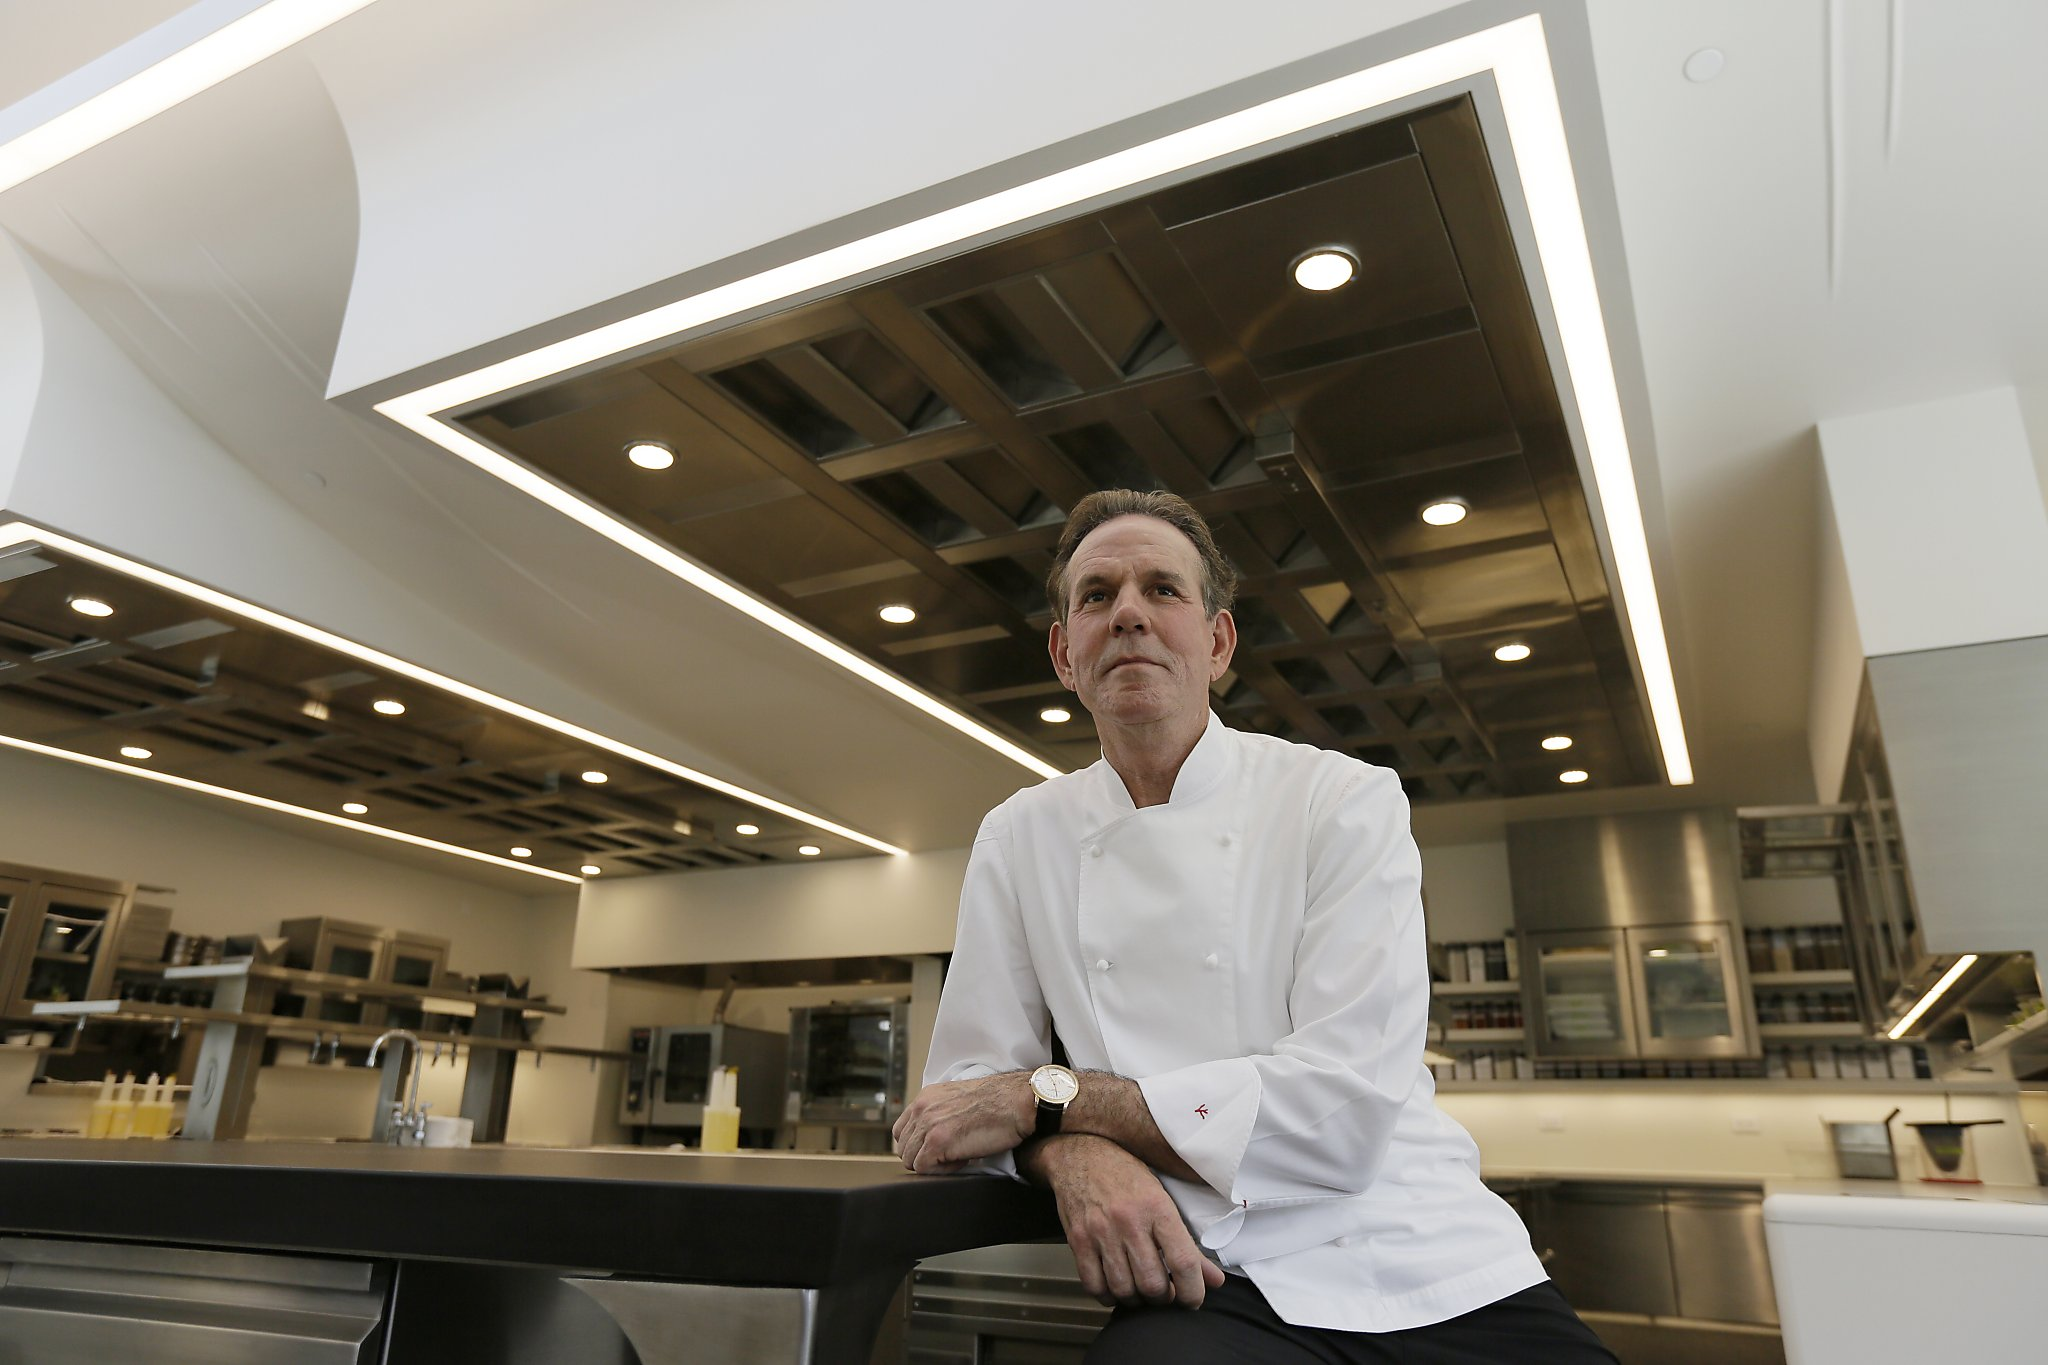 French Laundry chef Thomas Keller deletes Twitter account